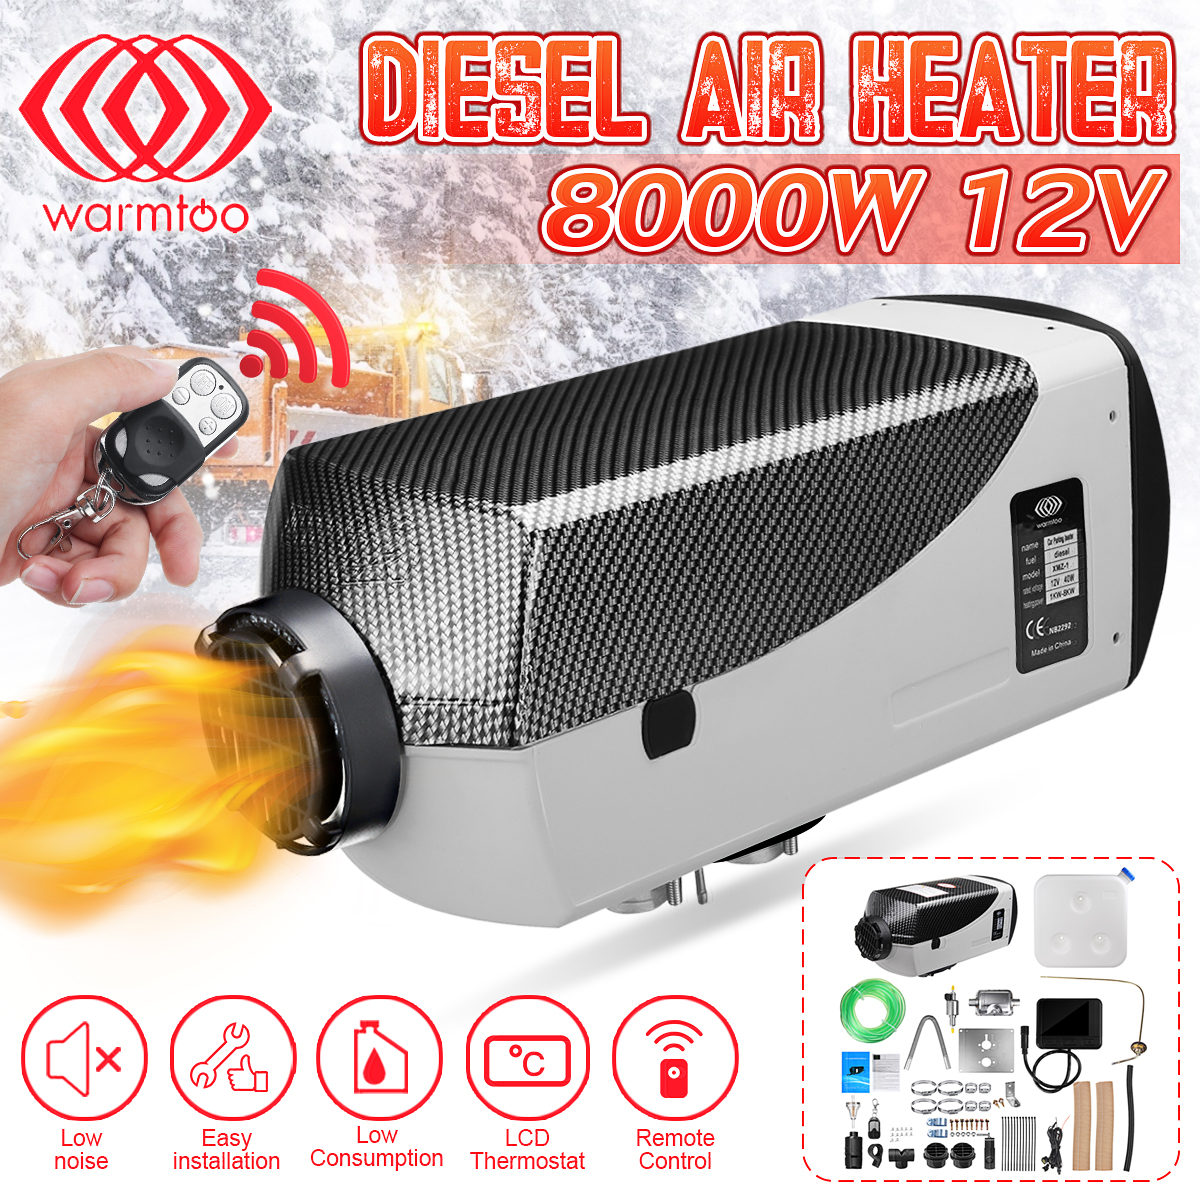 8000//5000W 12V Diesel Air Heater Thermostat Remote for Car Truck Boat Trailer RV